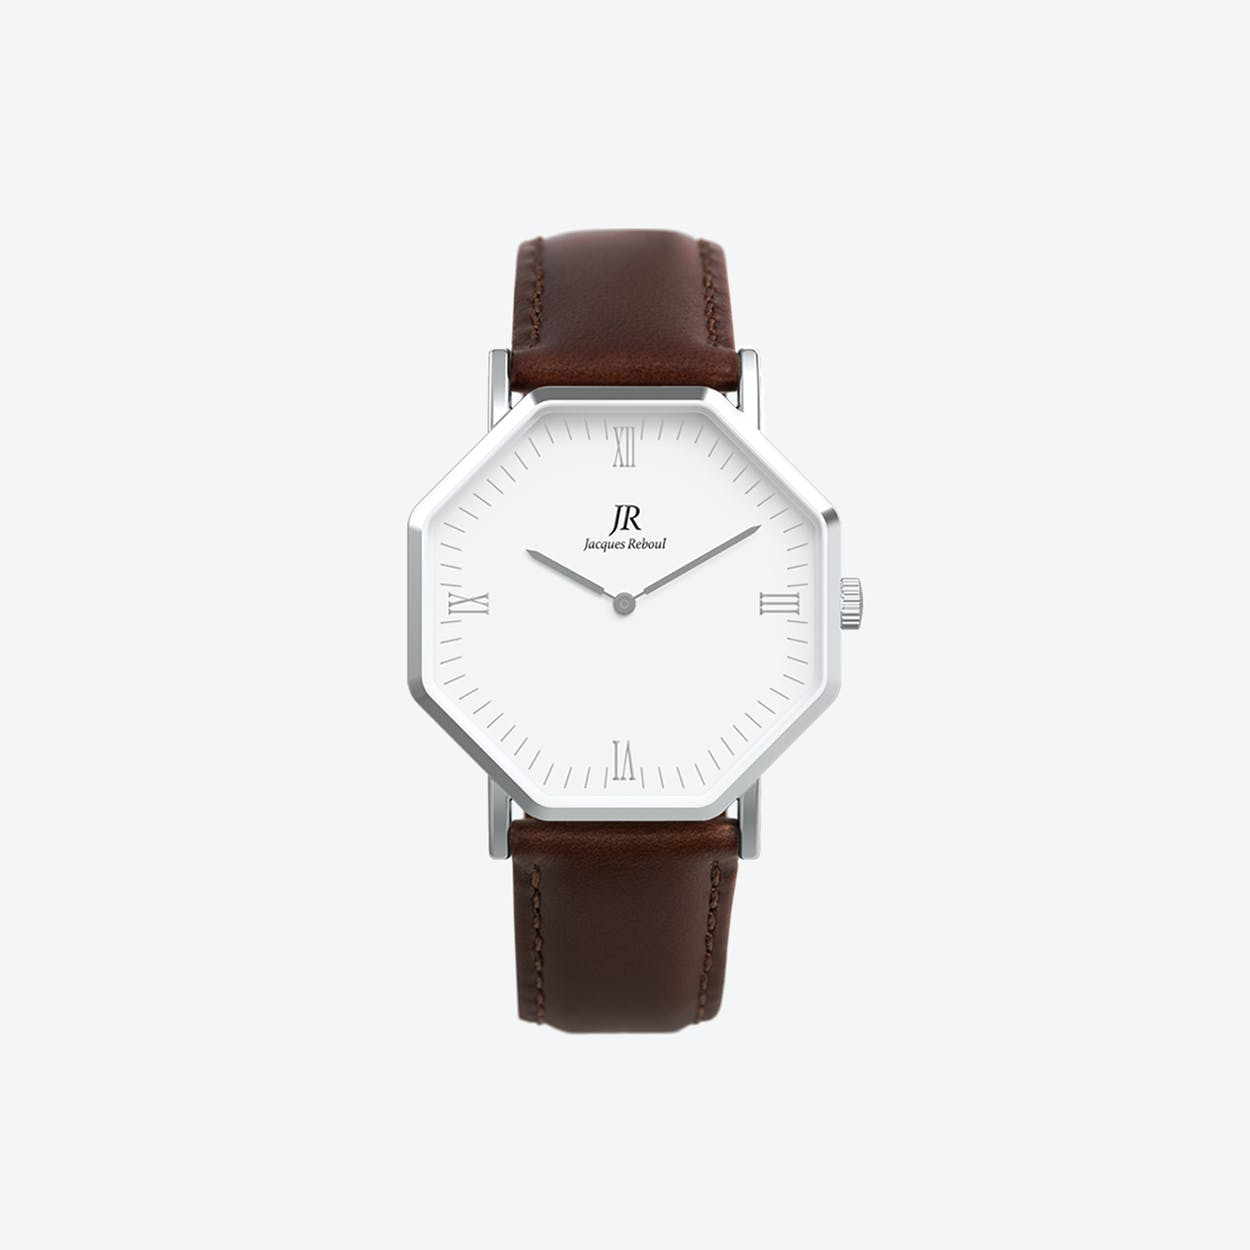 Silver Hexagonal Watch with Dk Brown Leather Strap, 44mm